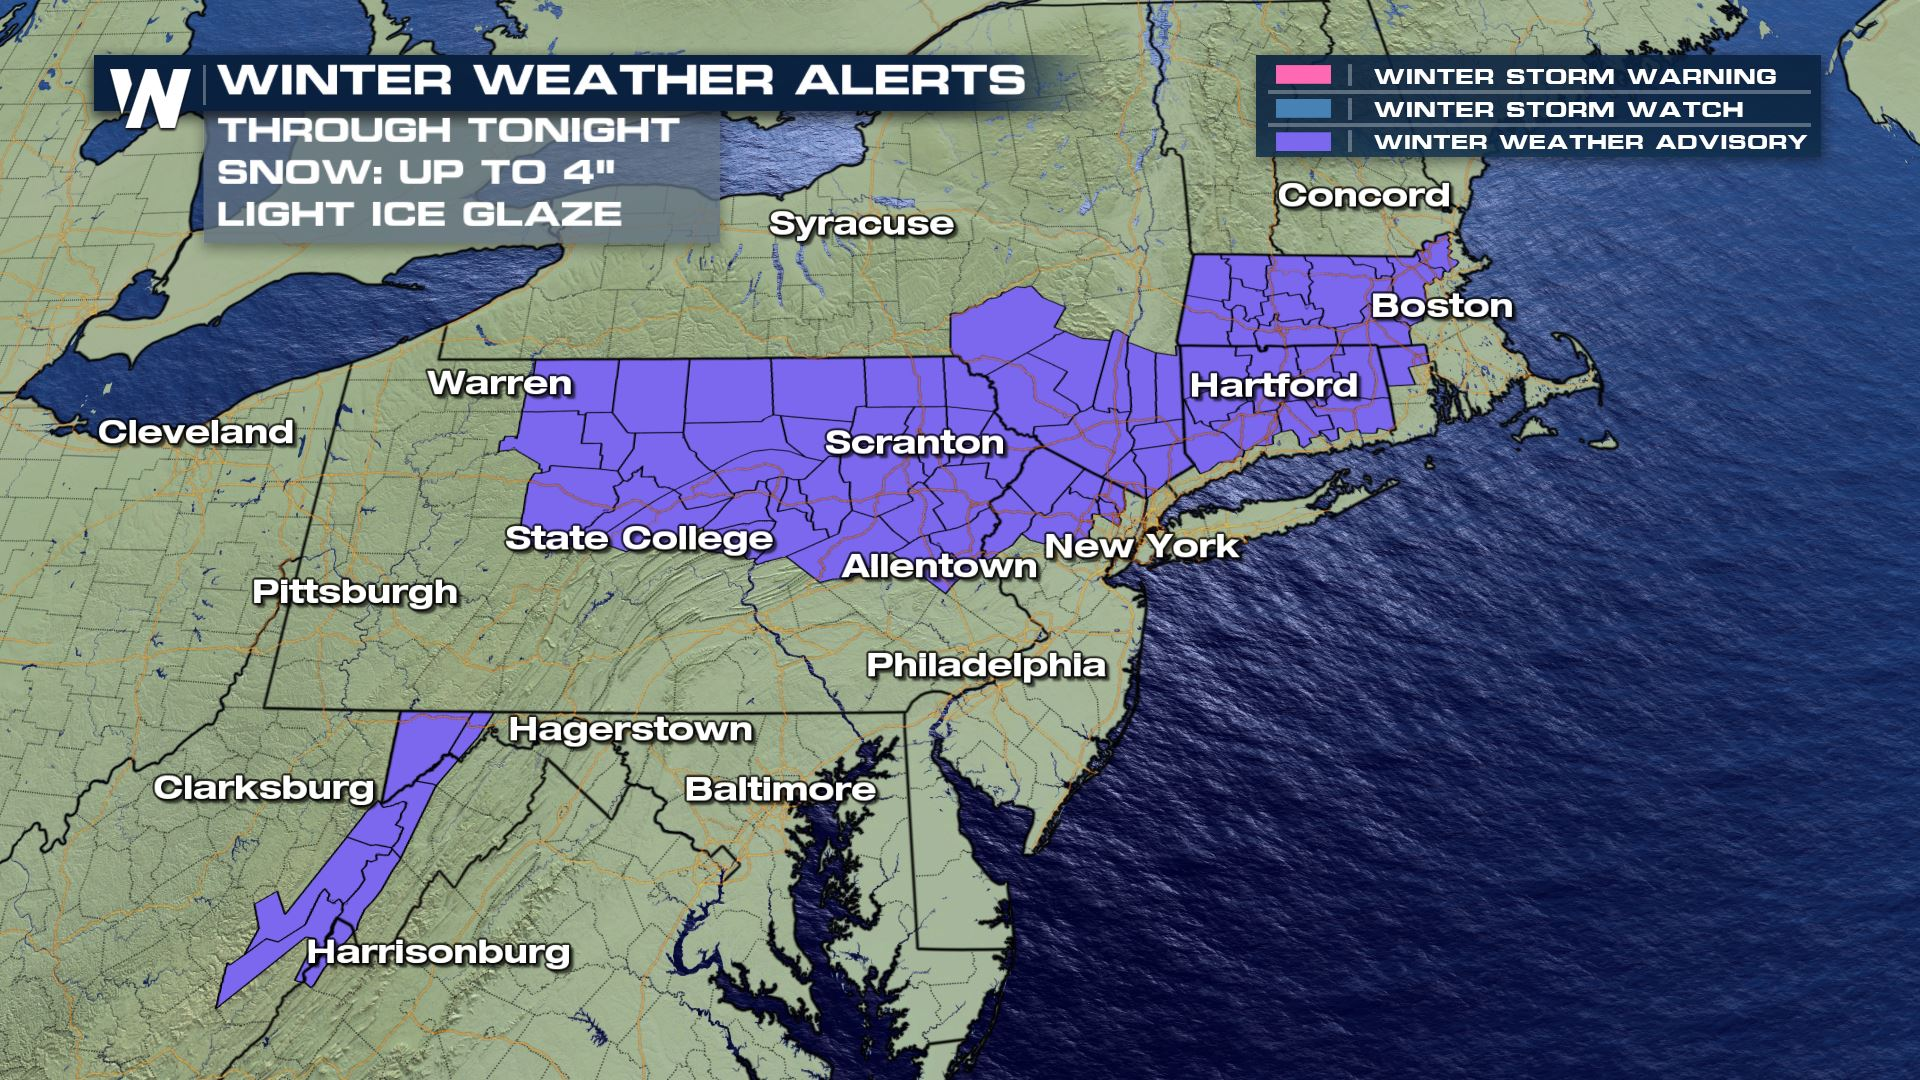 Additional Snow Into Monday for the Northeast